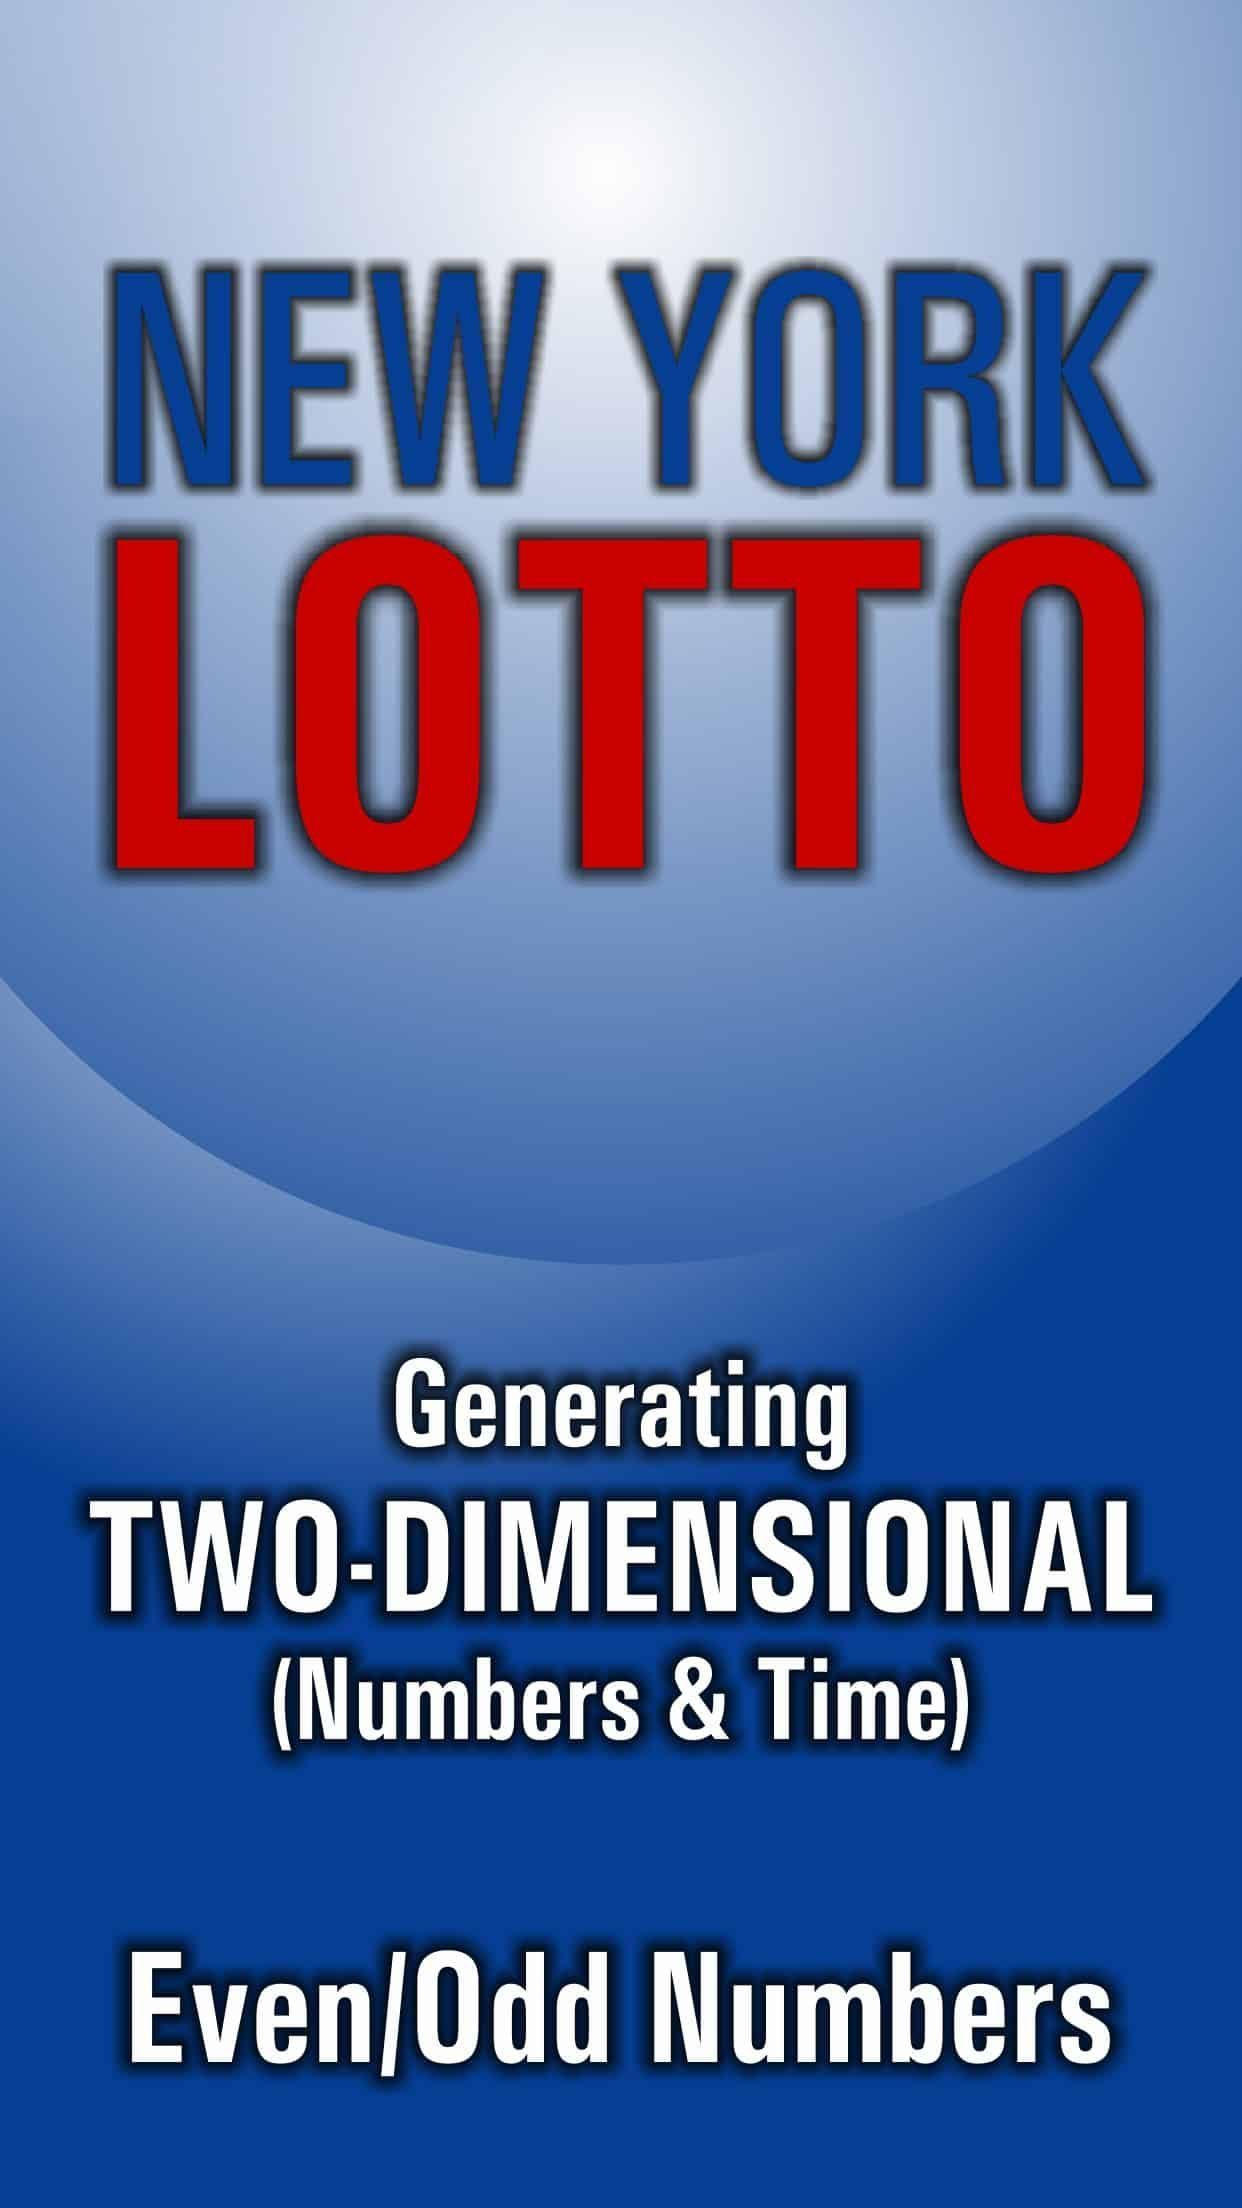 Win lotto strategies results ny lotterywinner Lottery